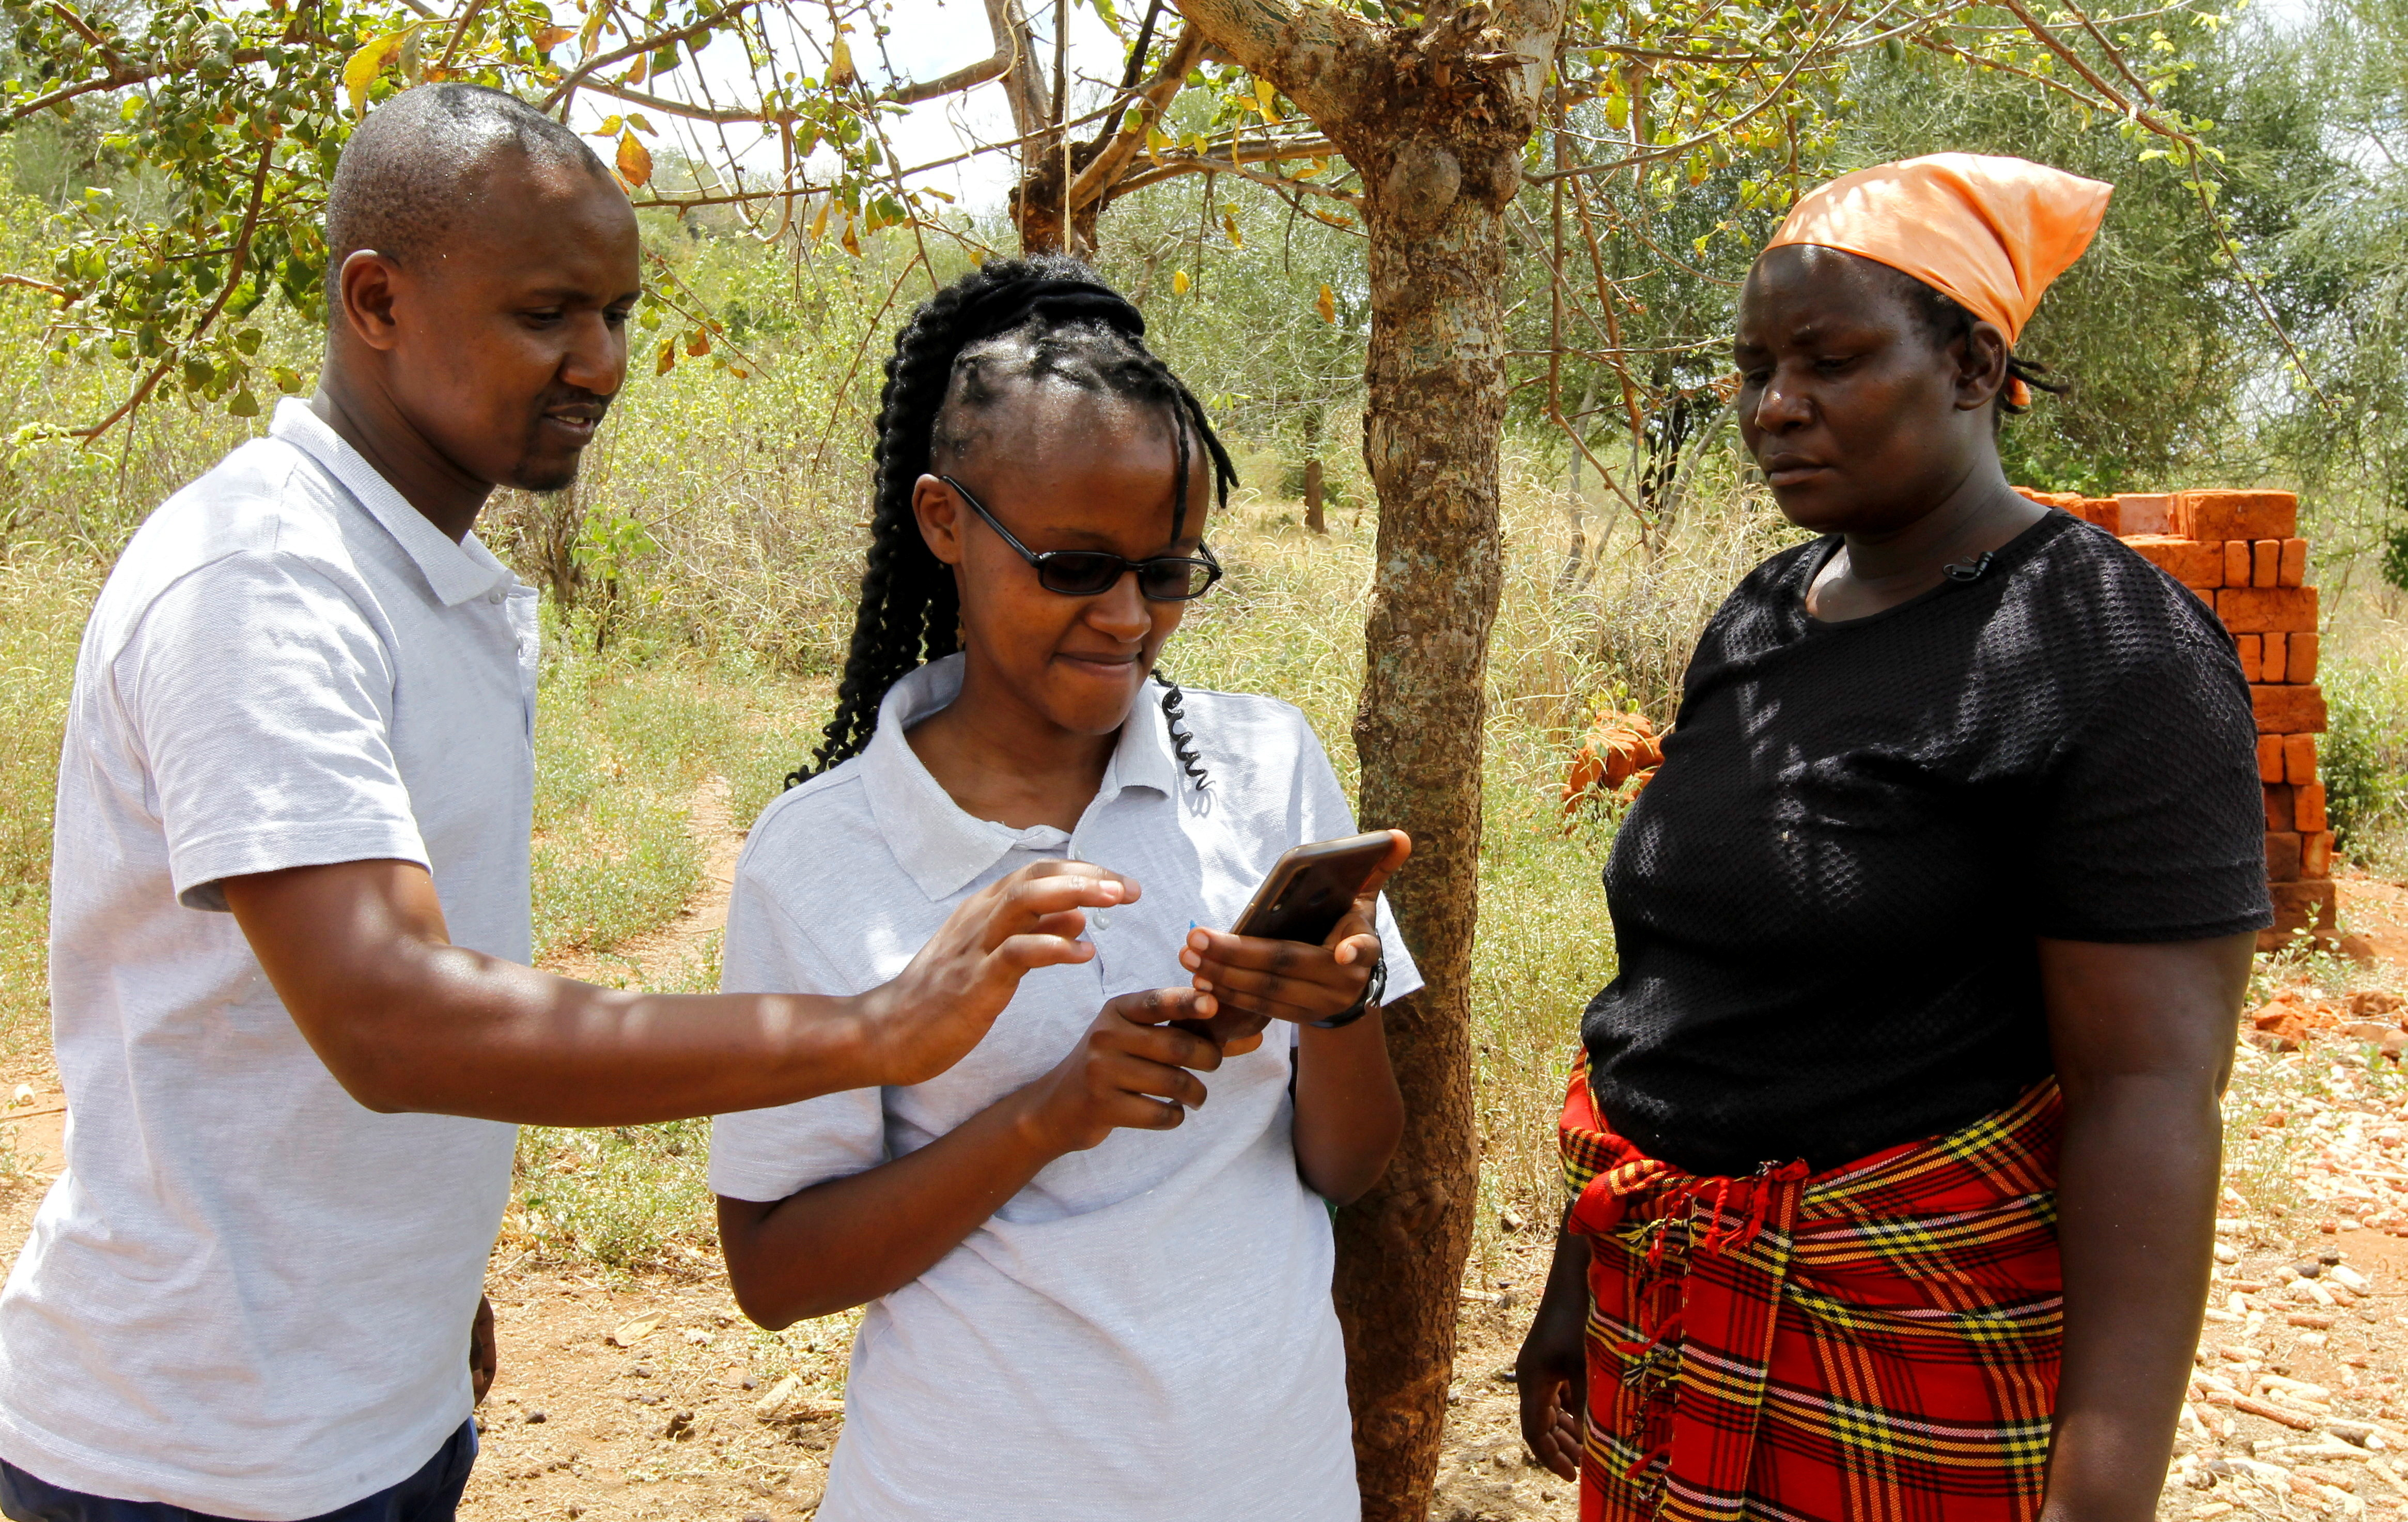 Pula operations manager Daniel Mbuvi and field officer Ruth Wambua update details of farmer Waki Munyalo in an app after collecting harvest insured by Pula, an agricultural insurance company that helps small-scale farmers manage the risk associated with extreme climate conditions, in Kitui county, Kenya, March 17, 2021. Picture taken March 17, 2021. REUTERS/Monicah Mwangi - RC2LZM9TFV6Q